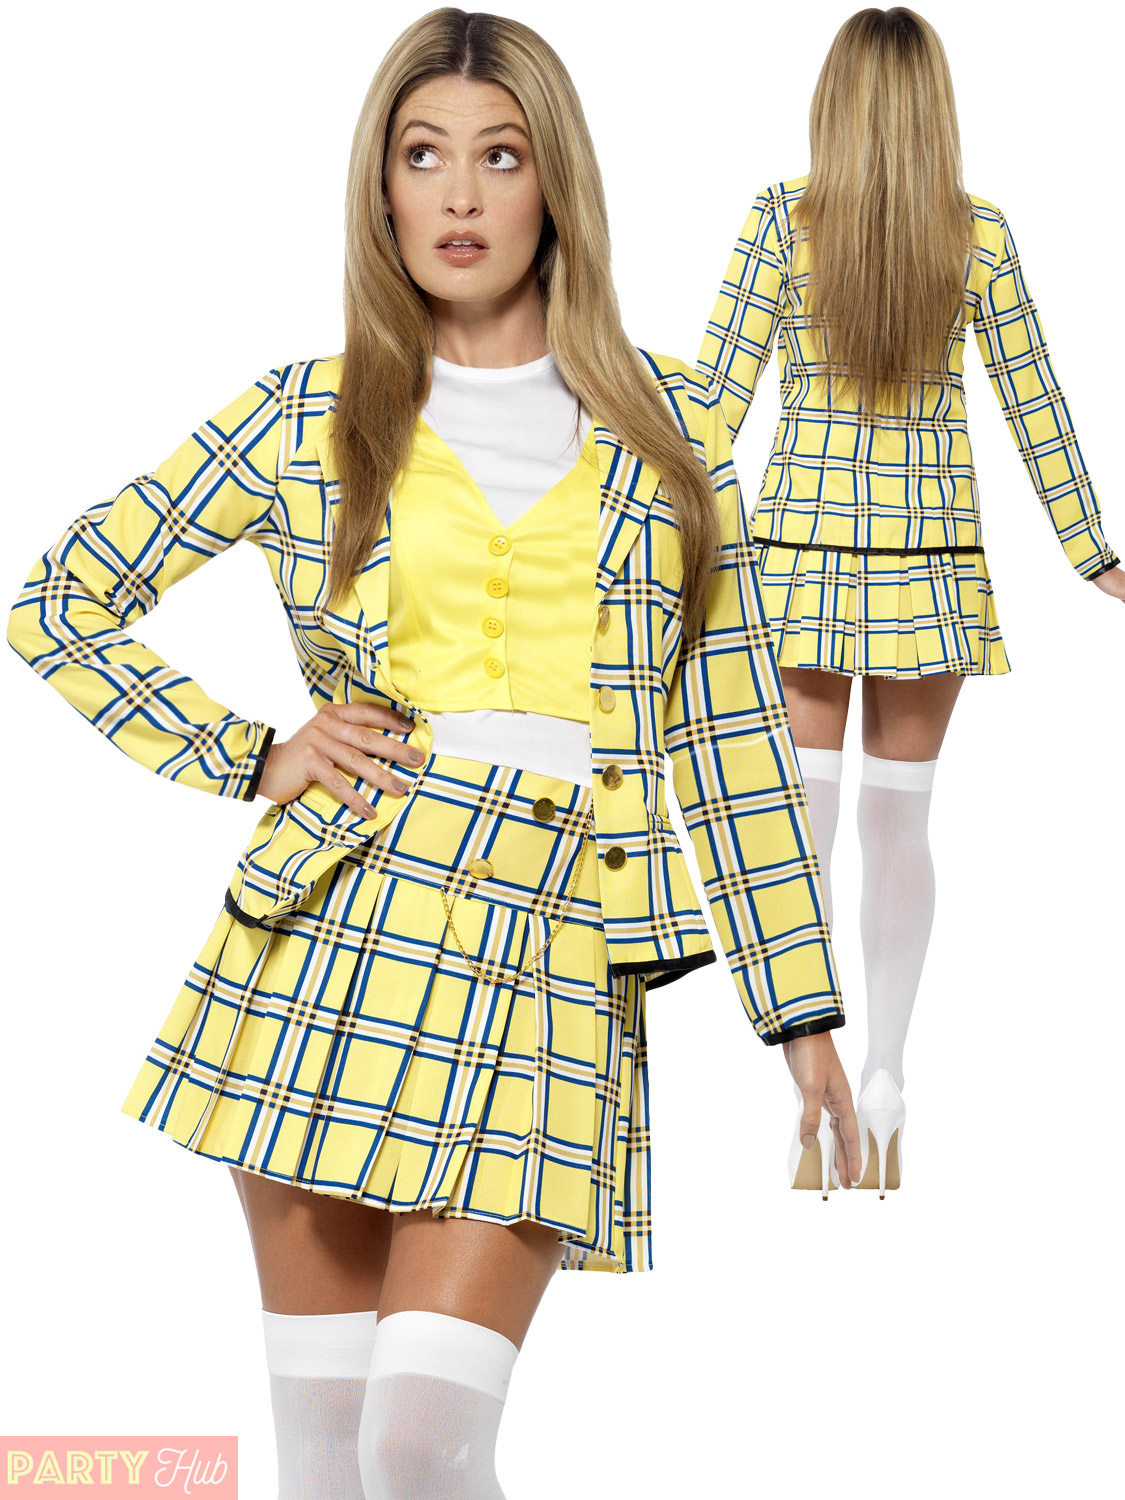 Adults clueless costume ladies cher dionne fancy dress tv film adults clueless costume ladies cher dionne fancy dress gumiabroncs Choice Image